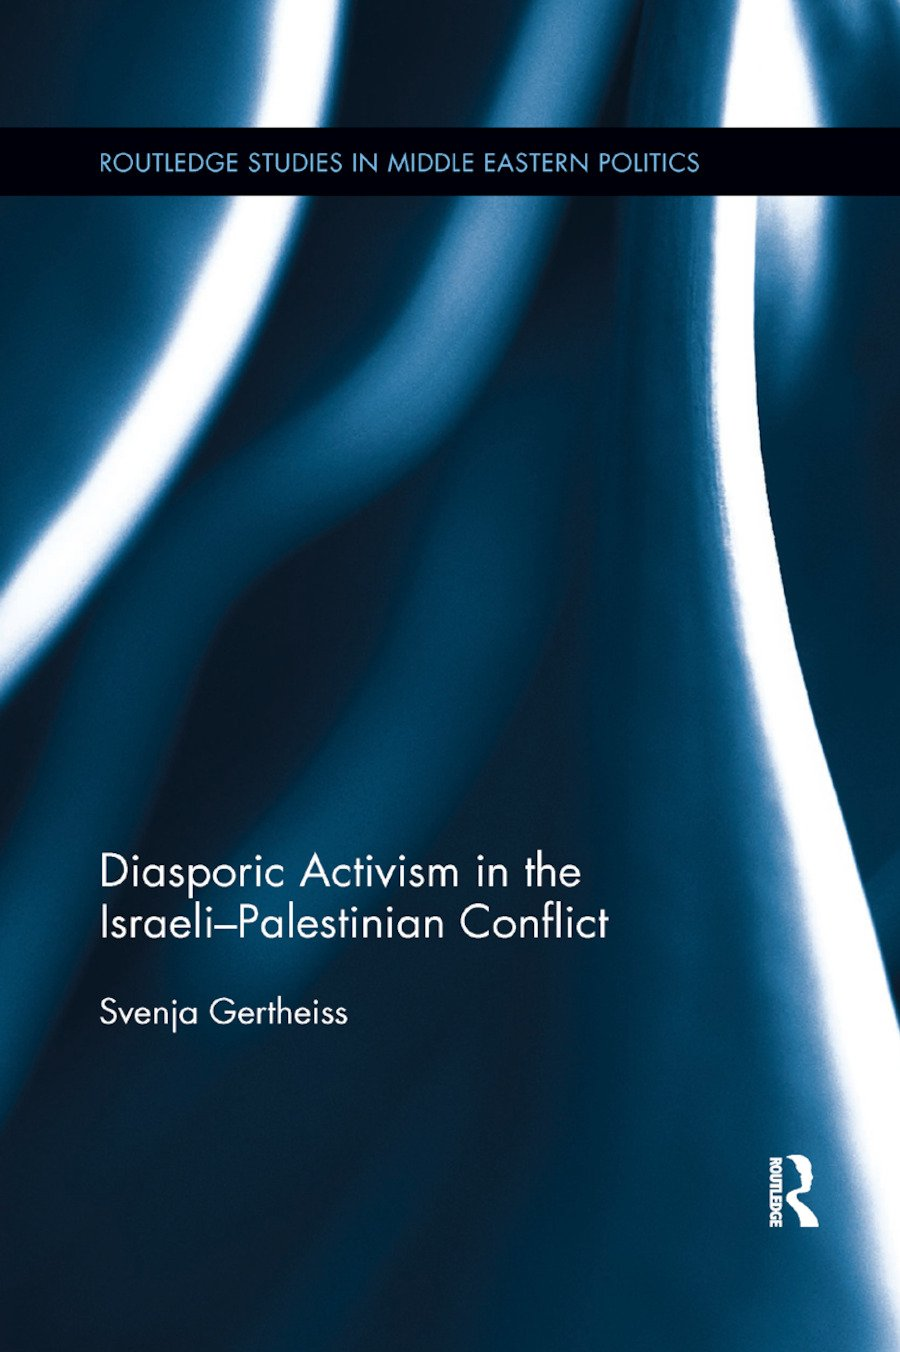 Diasporic Activism in the Israeli-Palestinian Conflict book cover